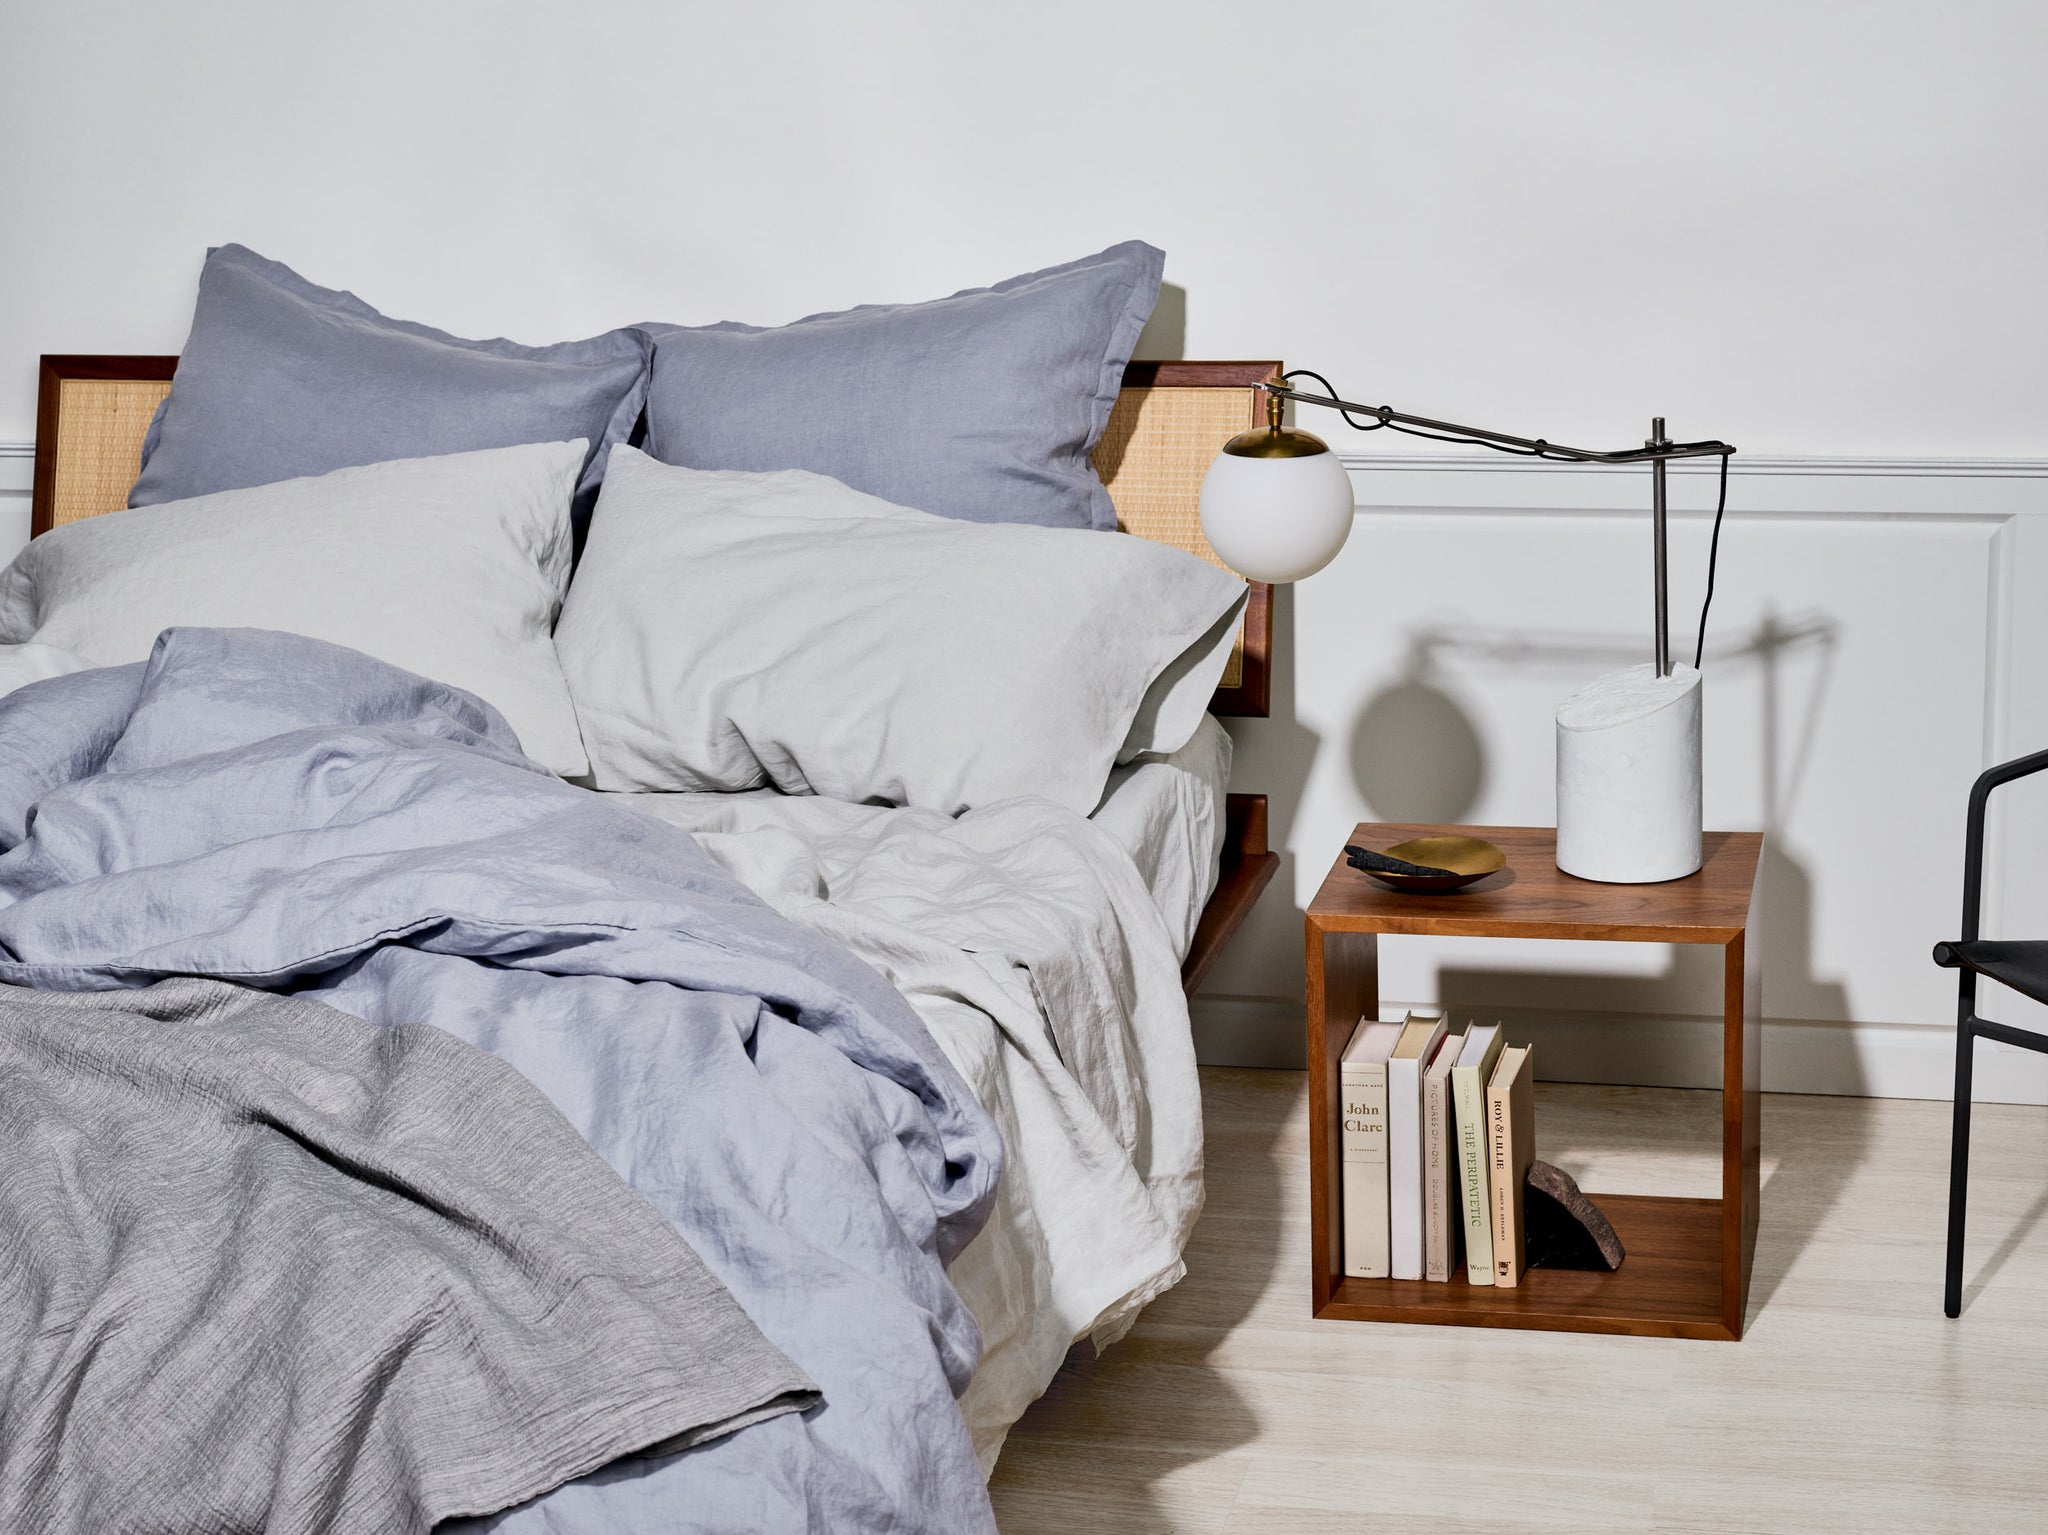 Snowe - Home essentials for whatever life brings